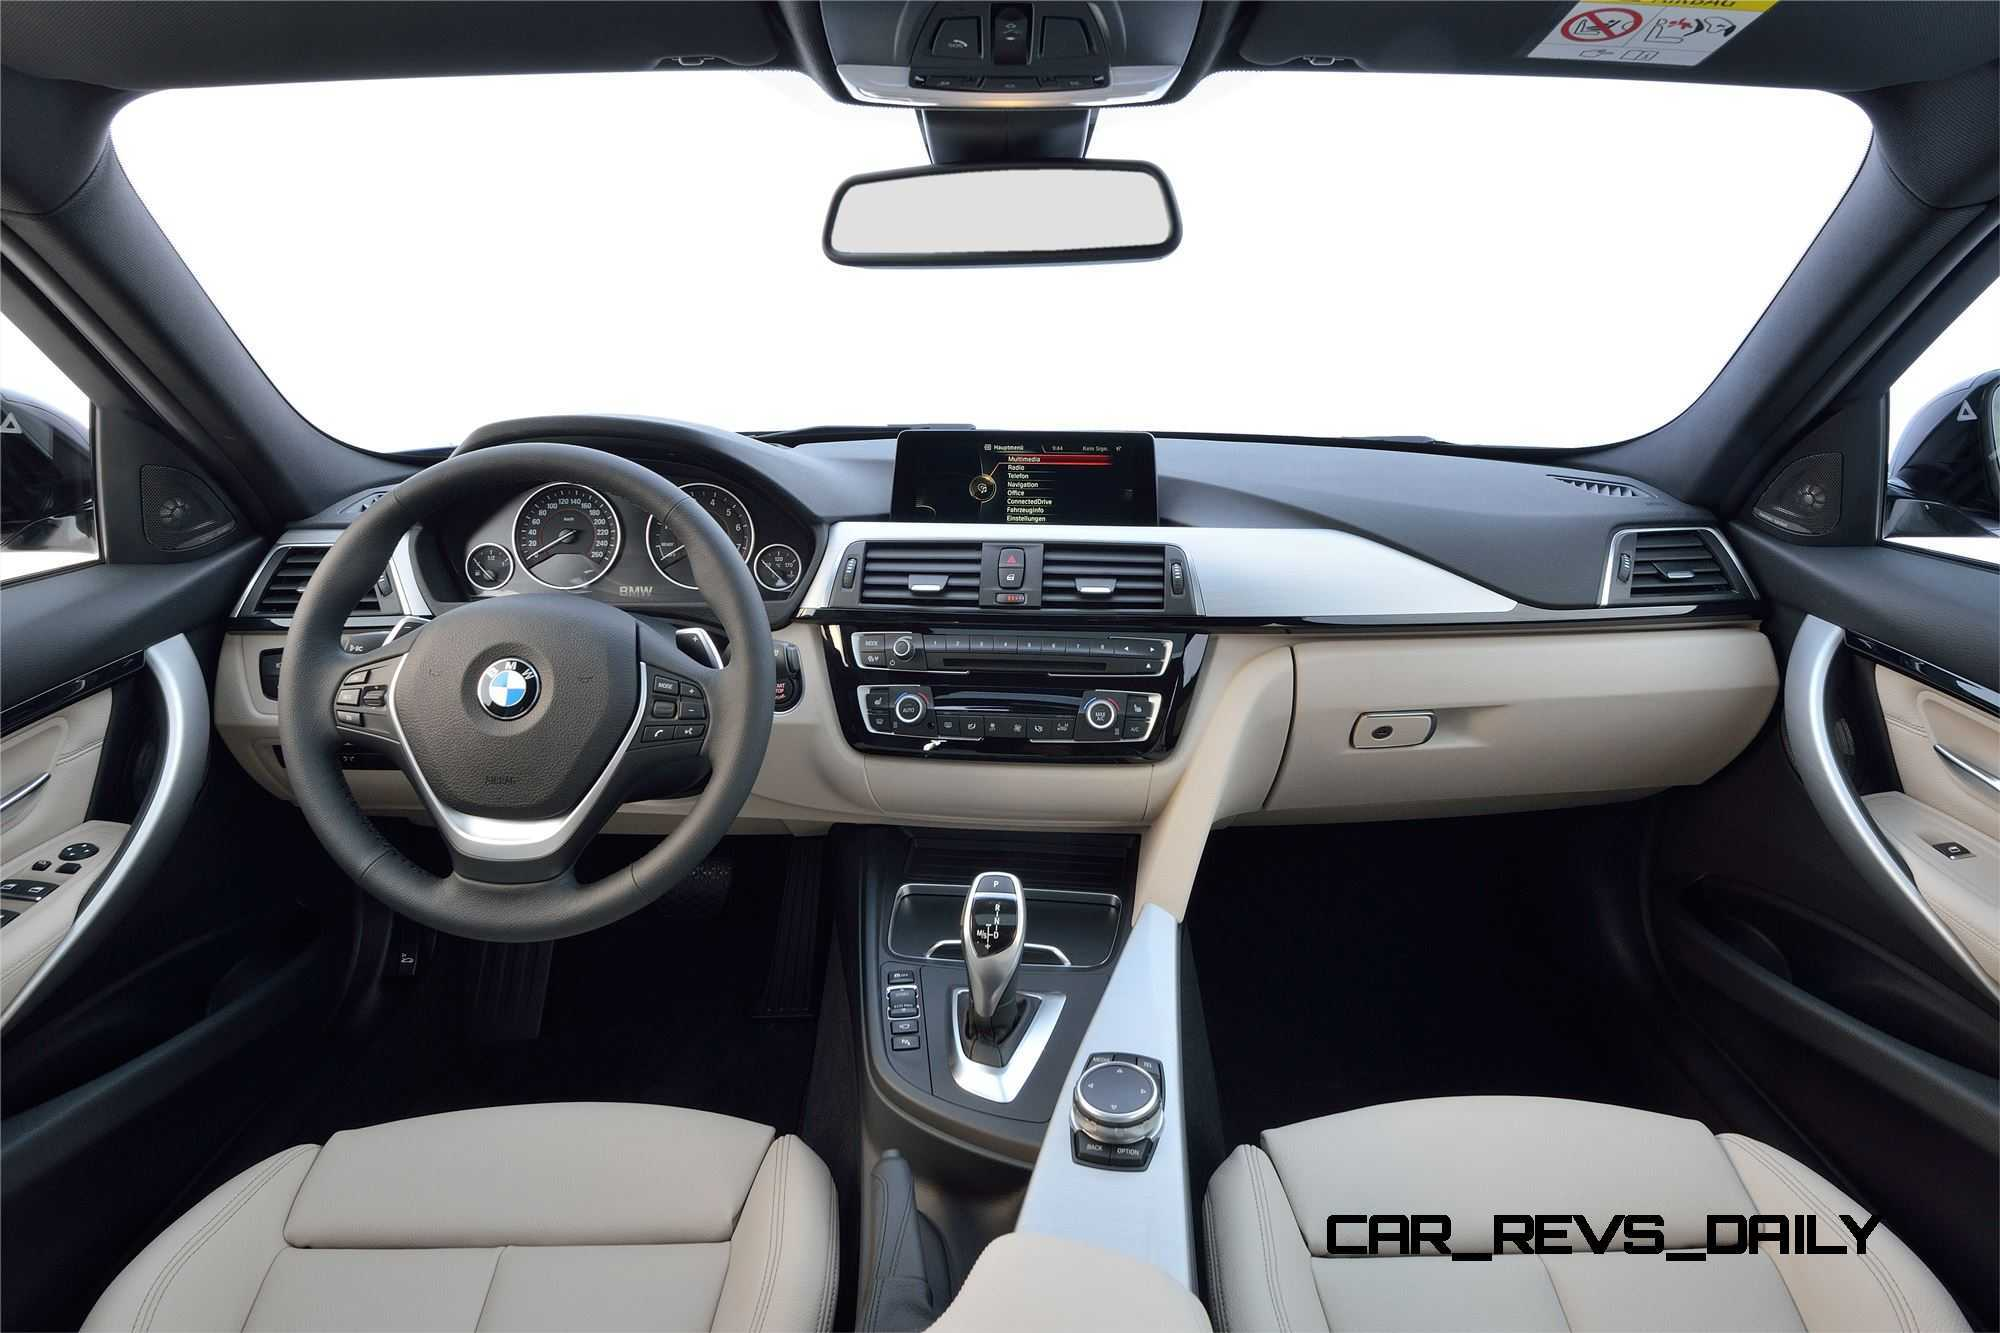 2016 Bmw 3 Series Interiors 26